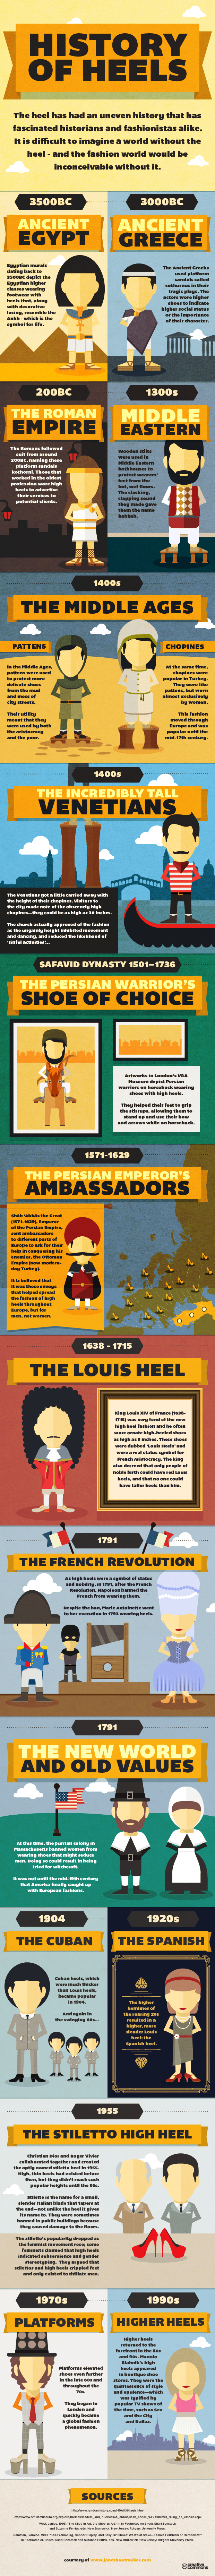 Jones Bootmaker - History of Heels Inforgraphic